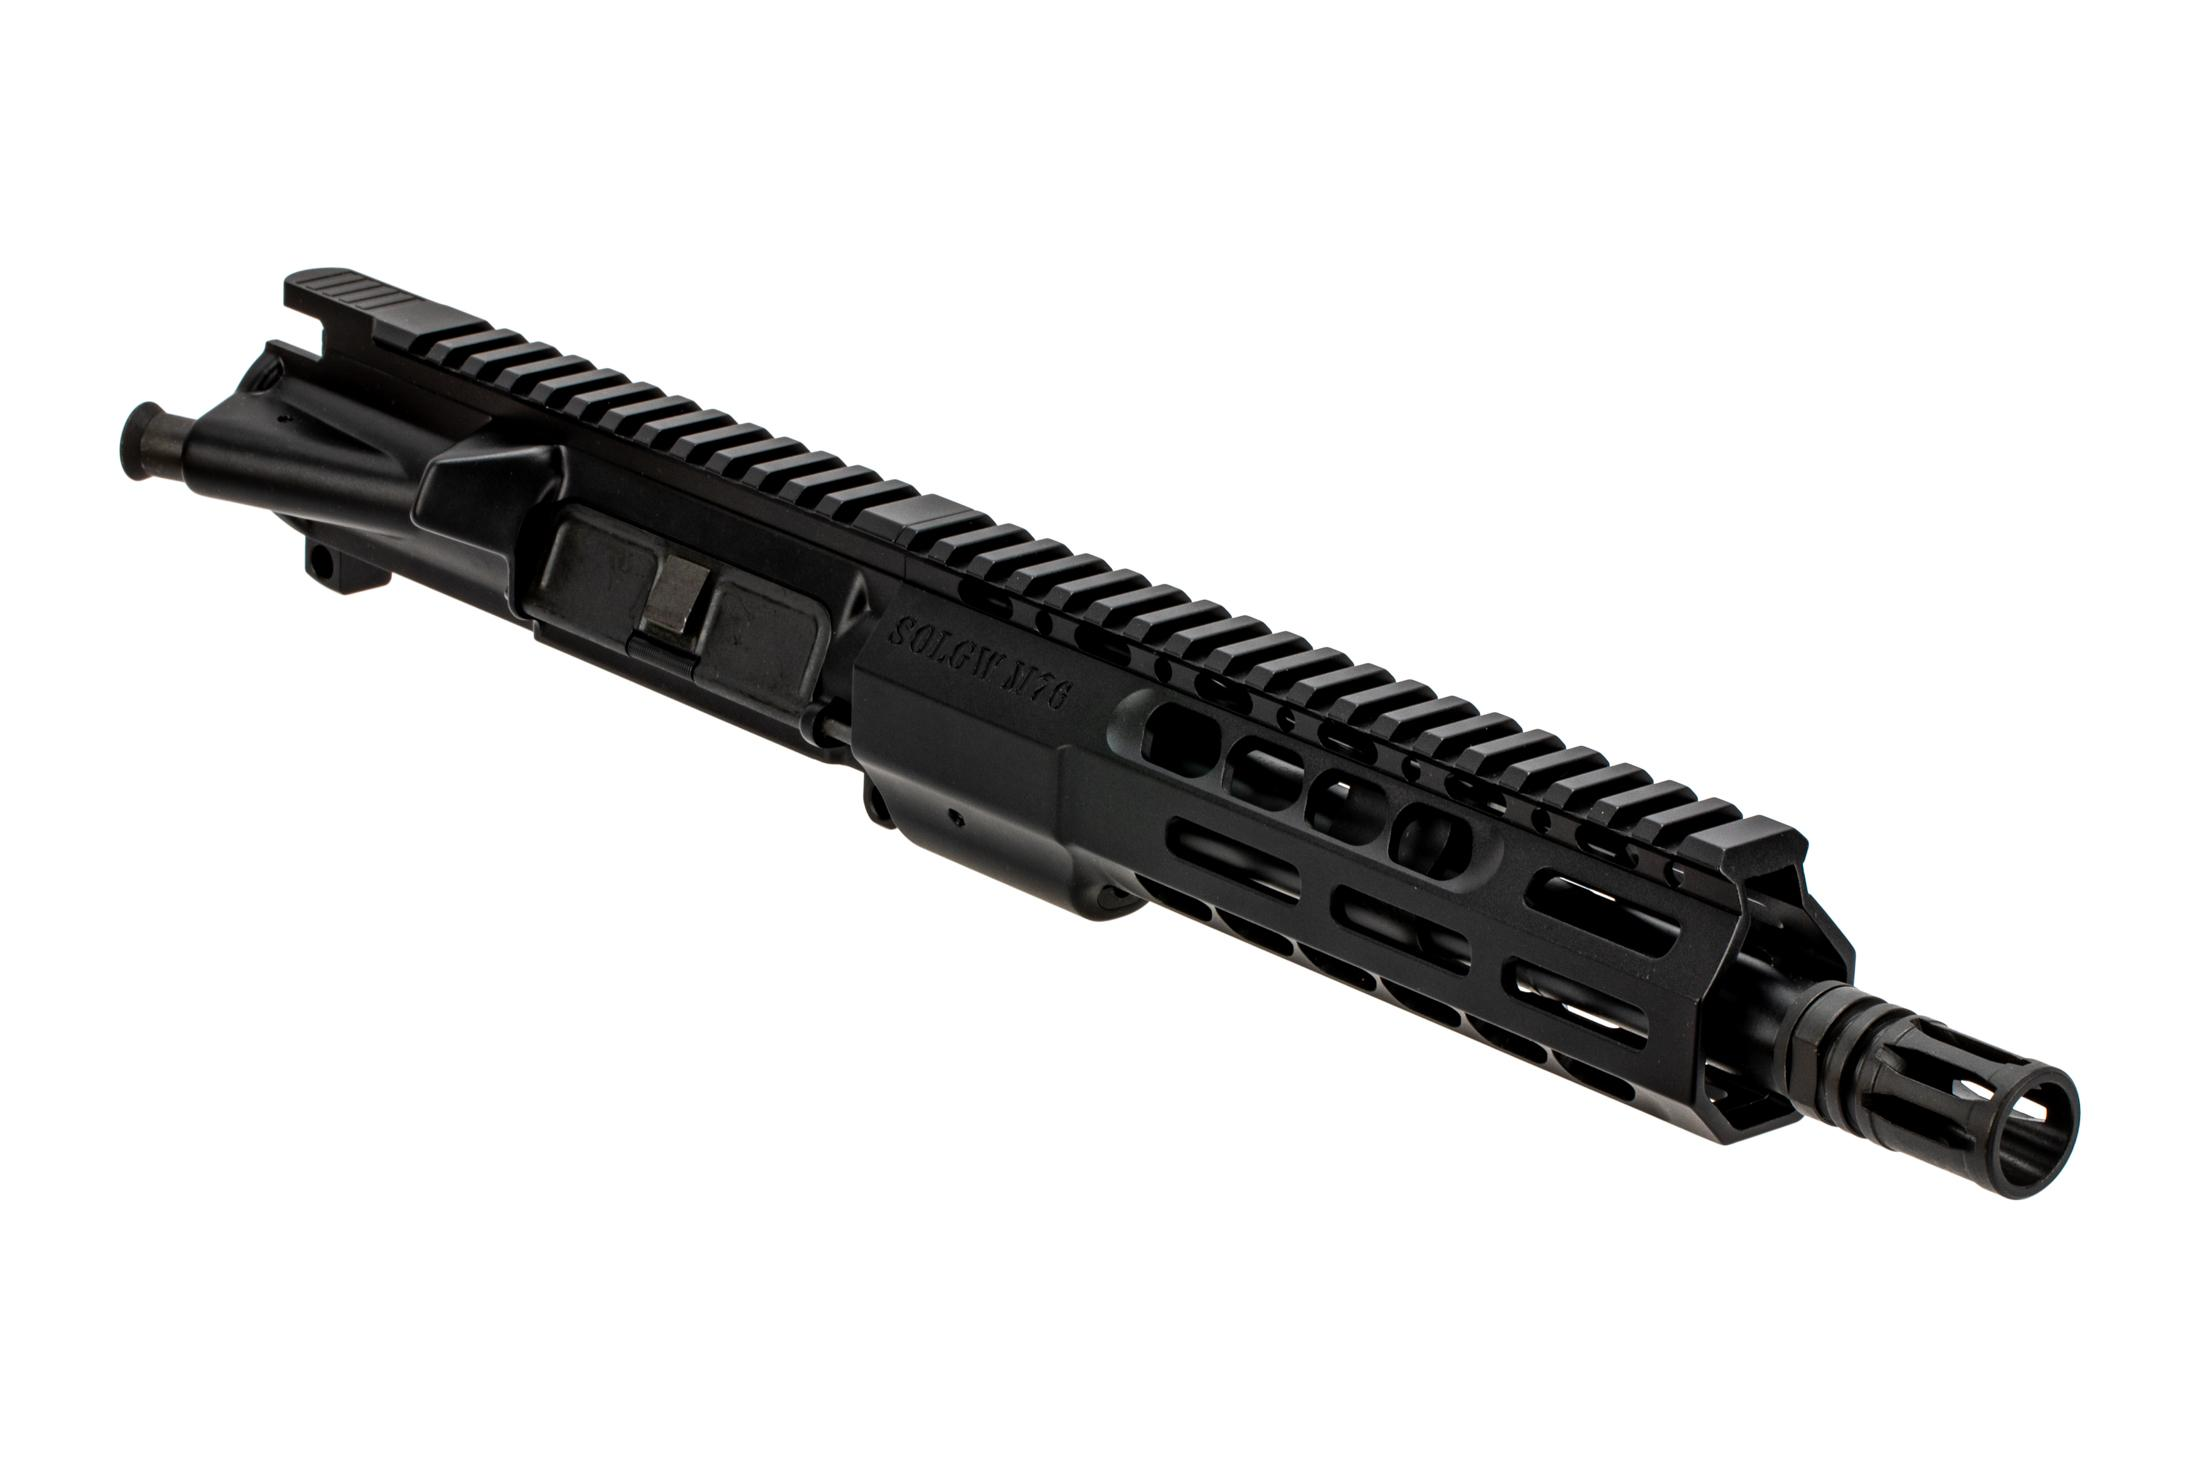 Sons of Liberty Gun Works 9 M4-76 barreled AR-15 upper receiver in 300 blk with A2 flash hider.